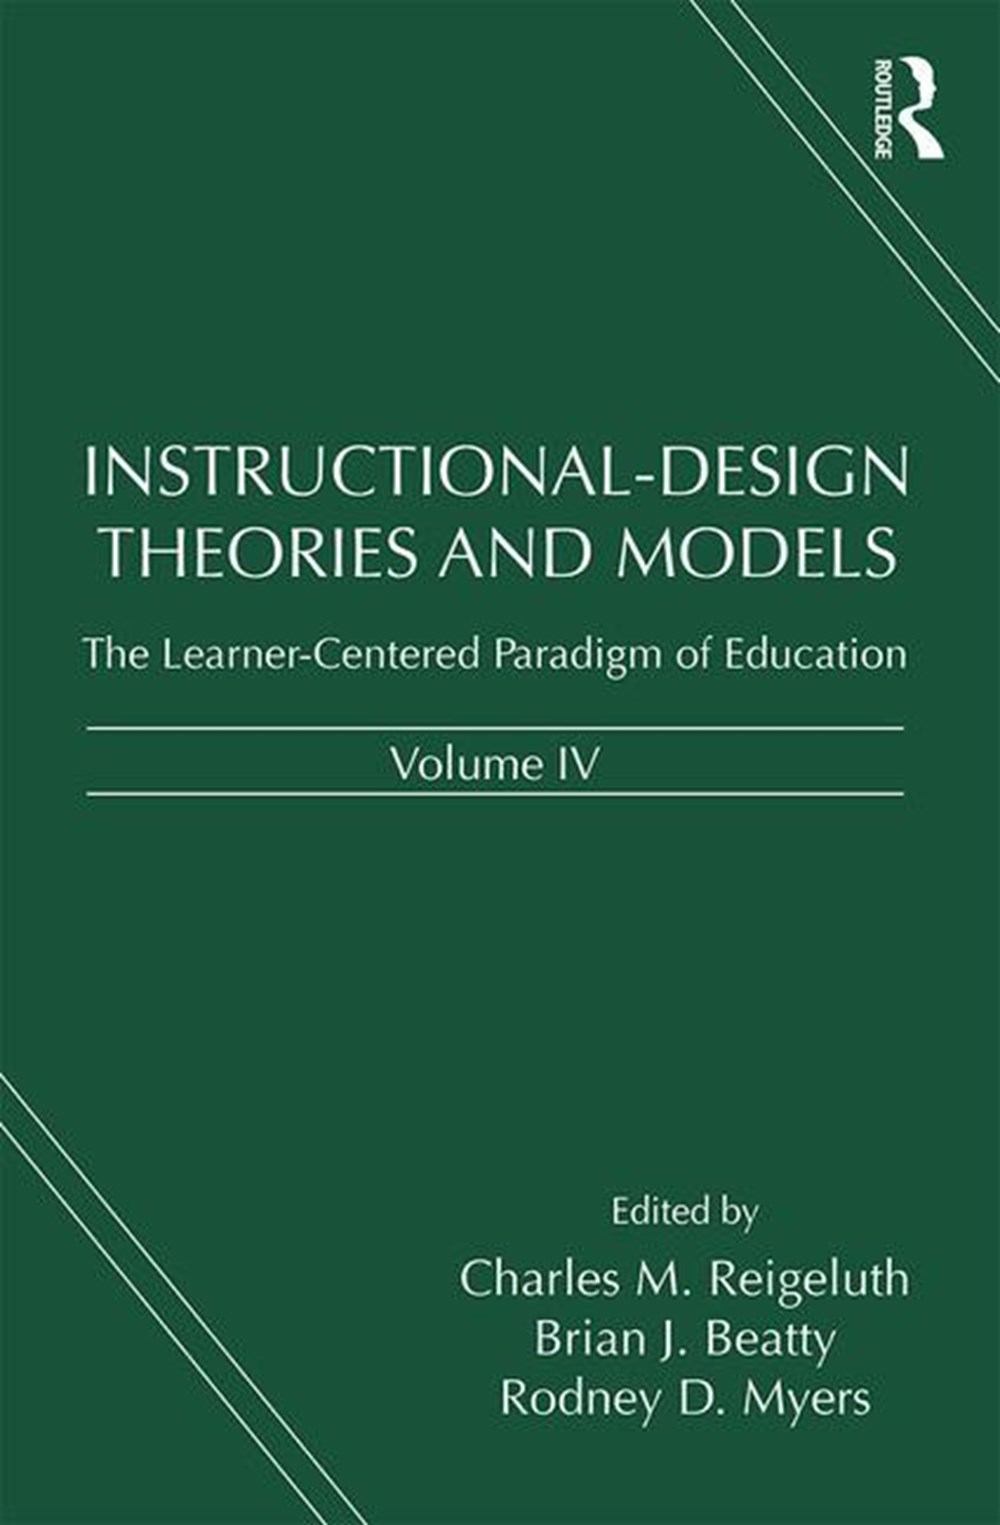 Instructional-Design Theories and Models, Volume IV The Learner-Centered Paradigm of Education